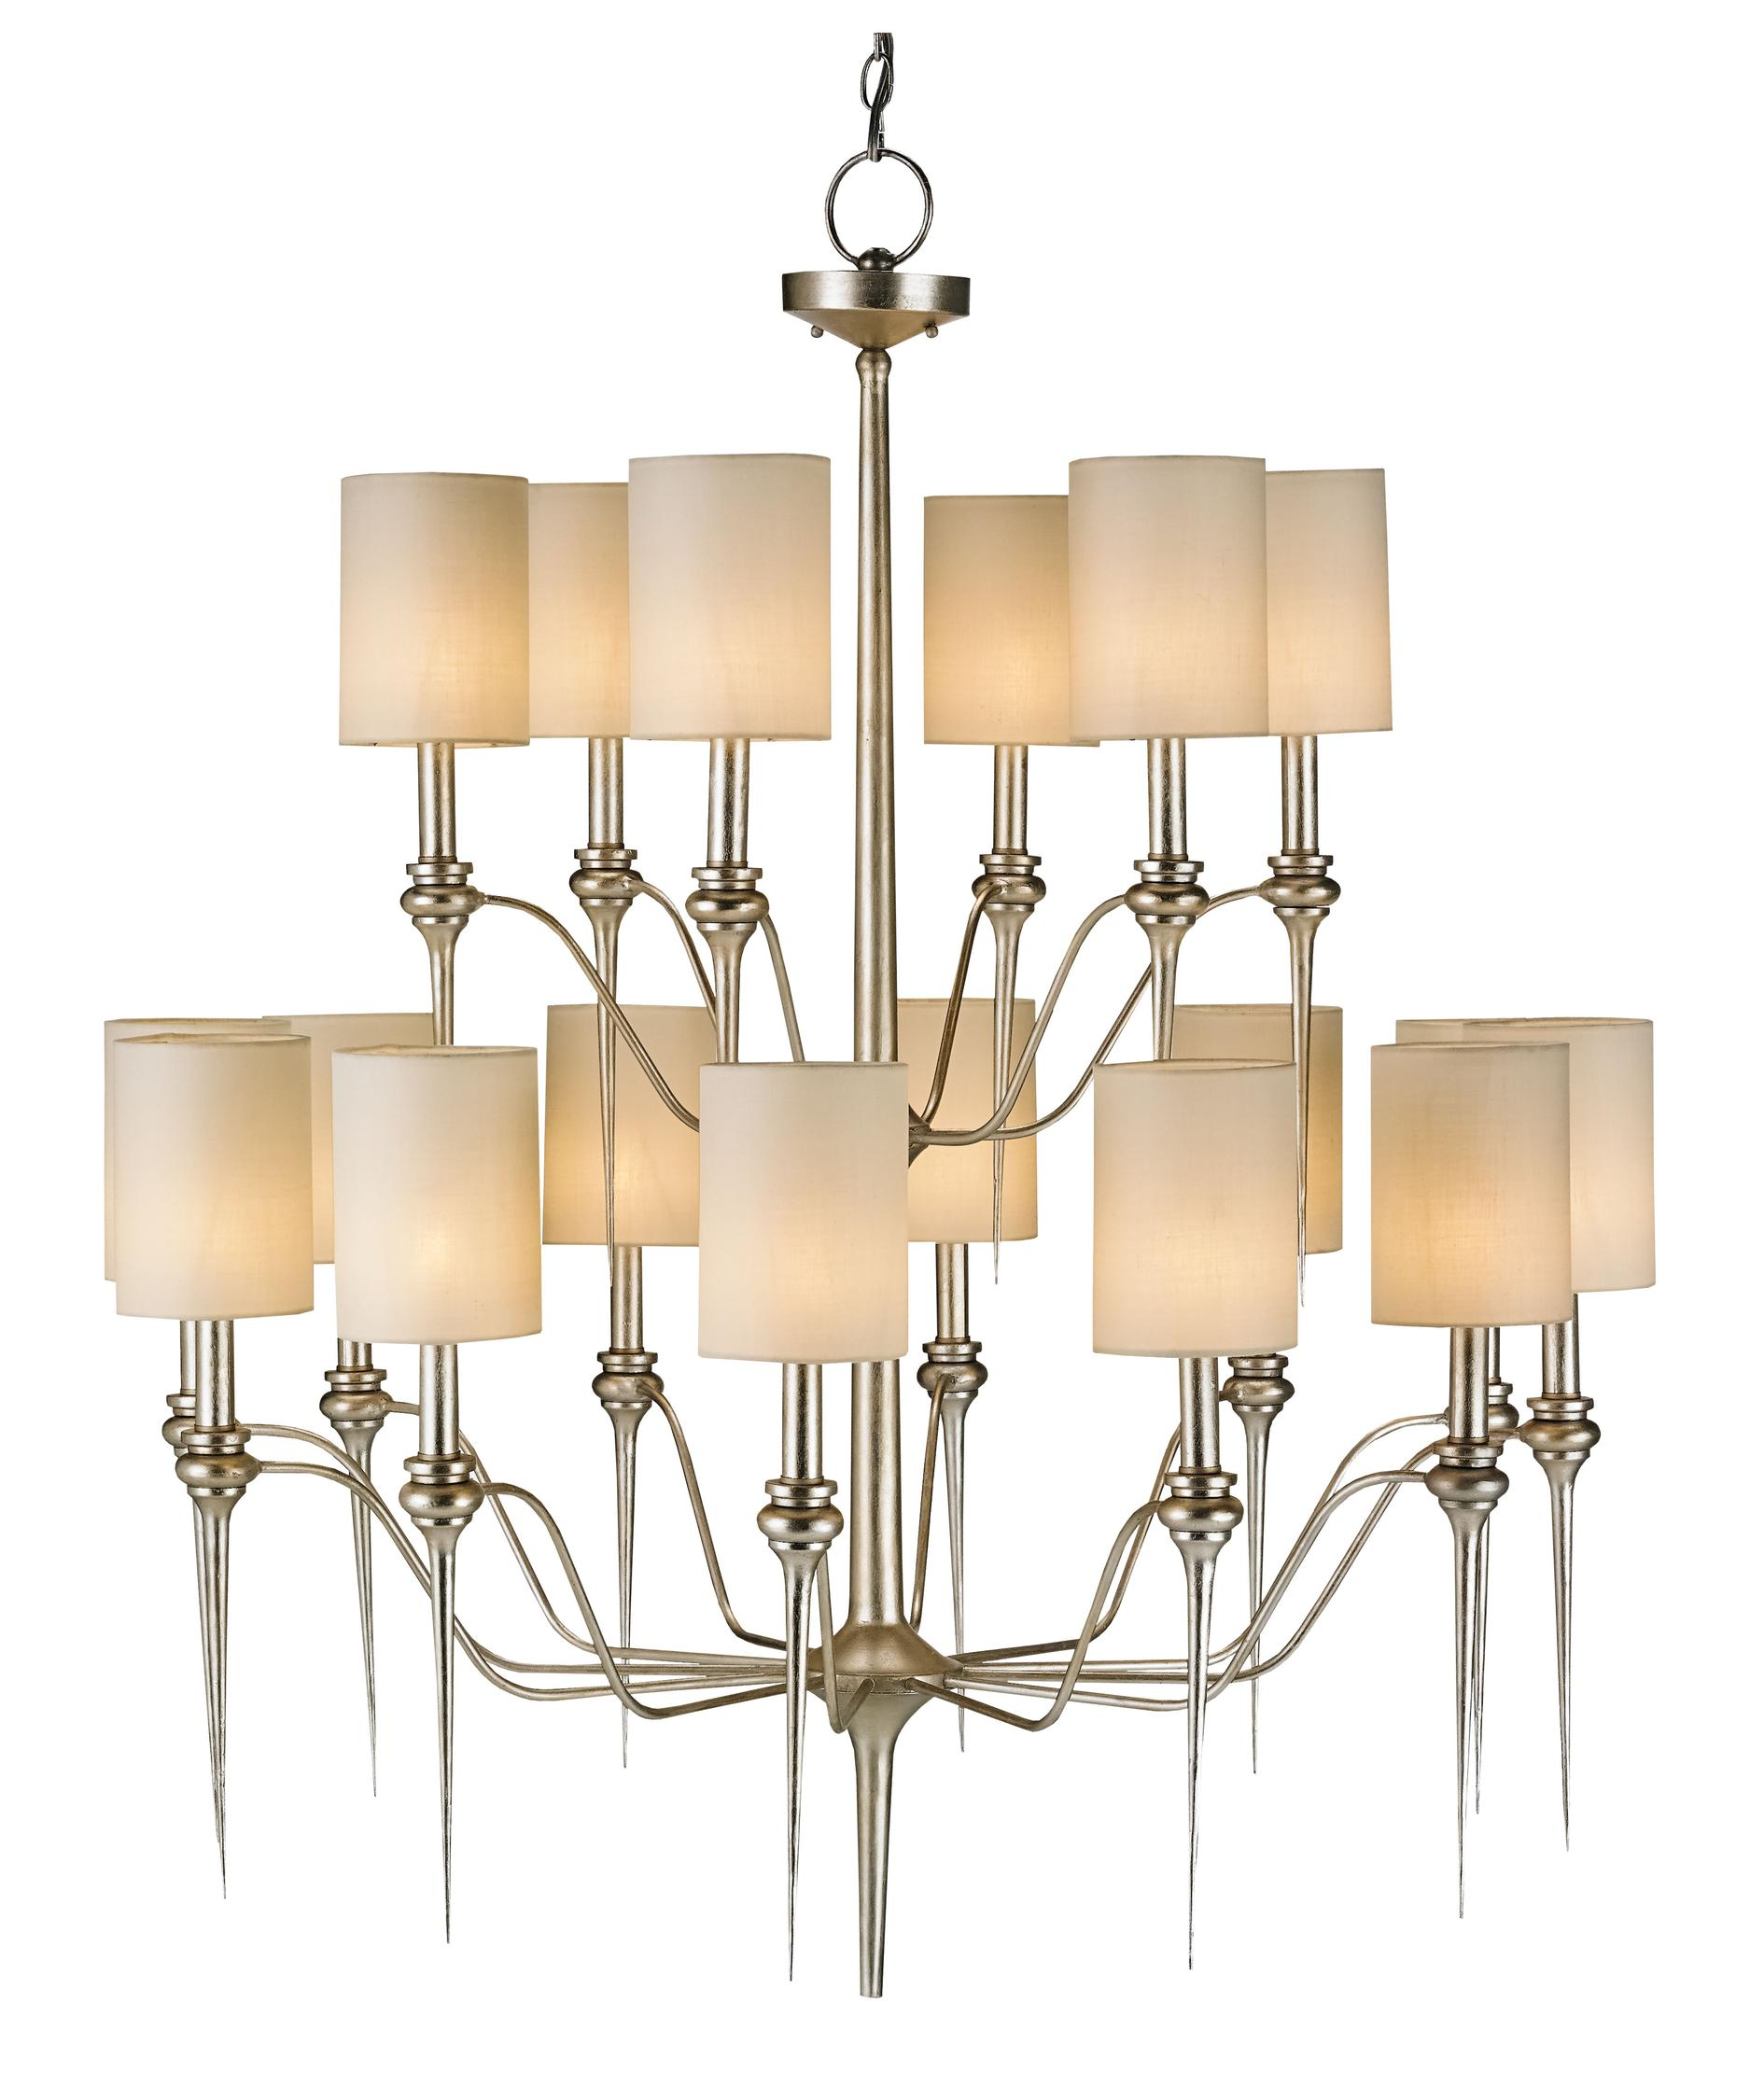 Currey and Company Chaddbury 43 Inch Large Foyer Chandelier | Capitol  Lighting 1-800lighting.com